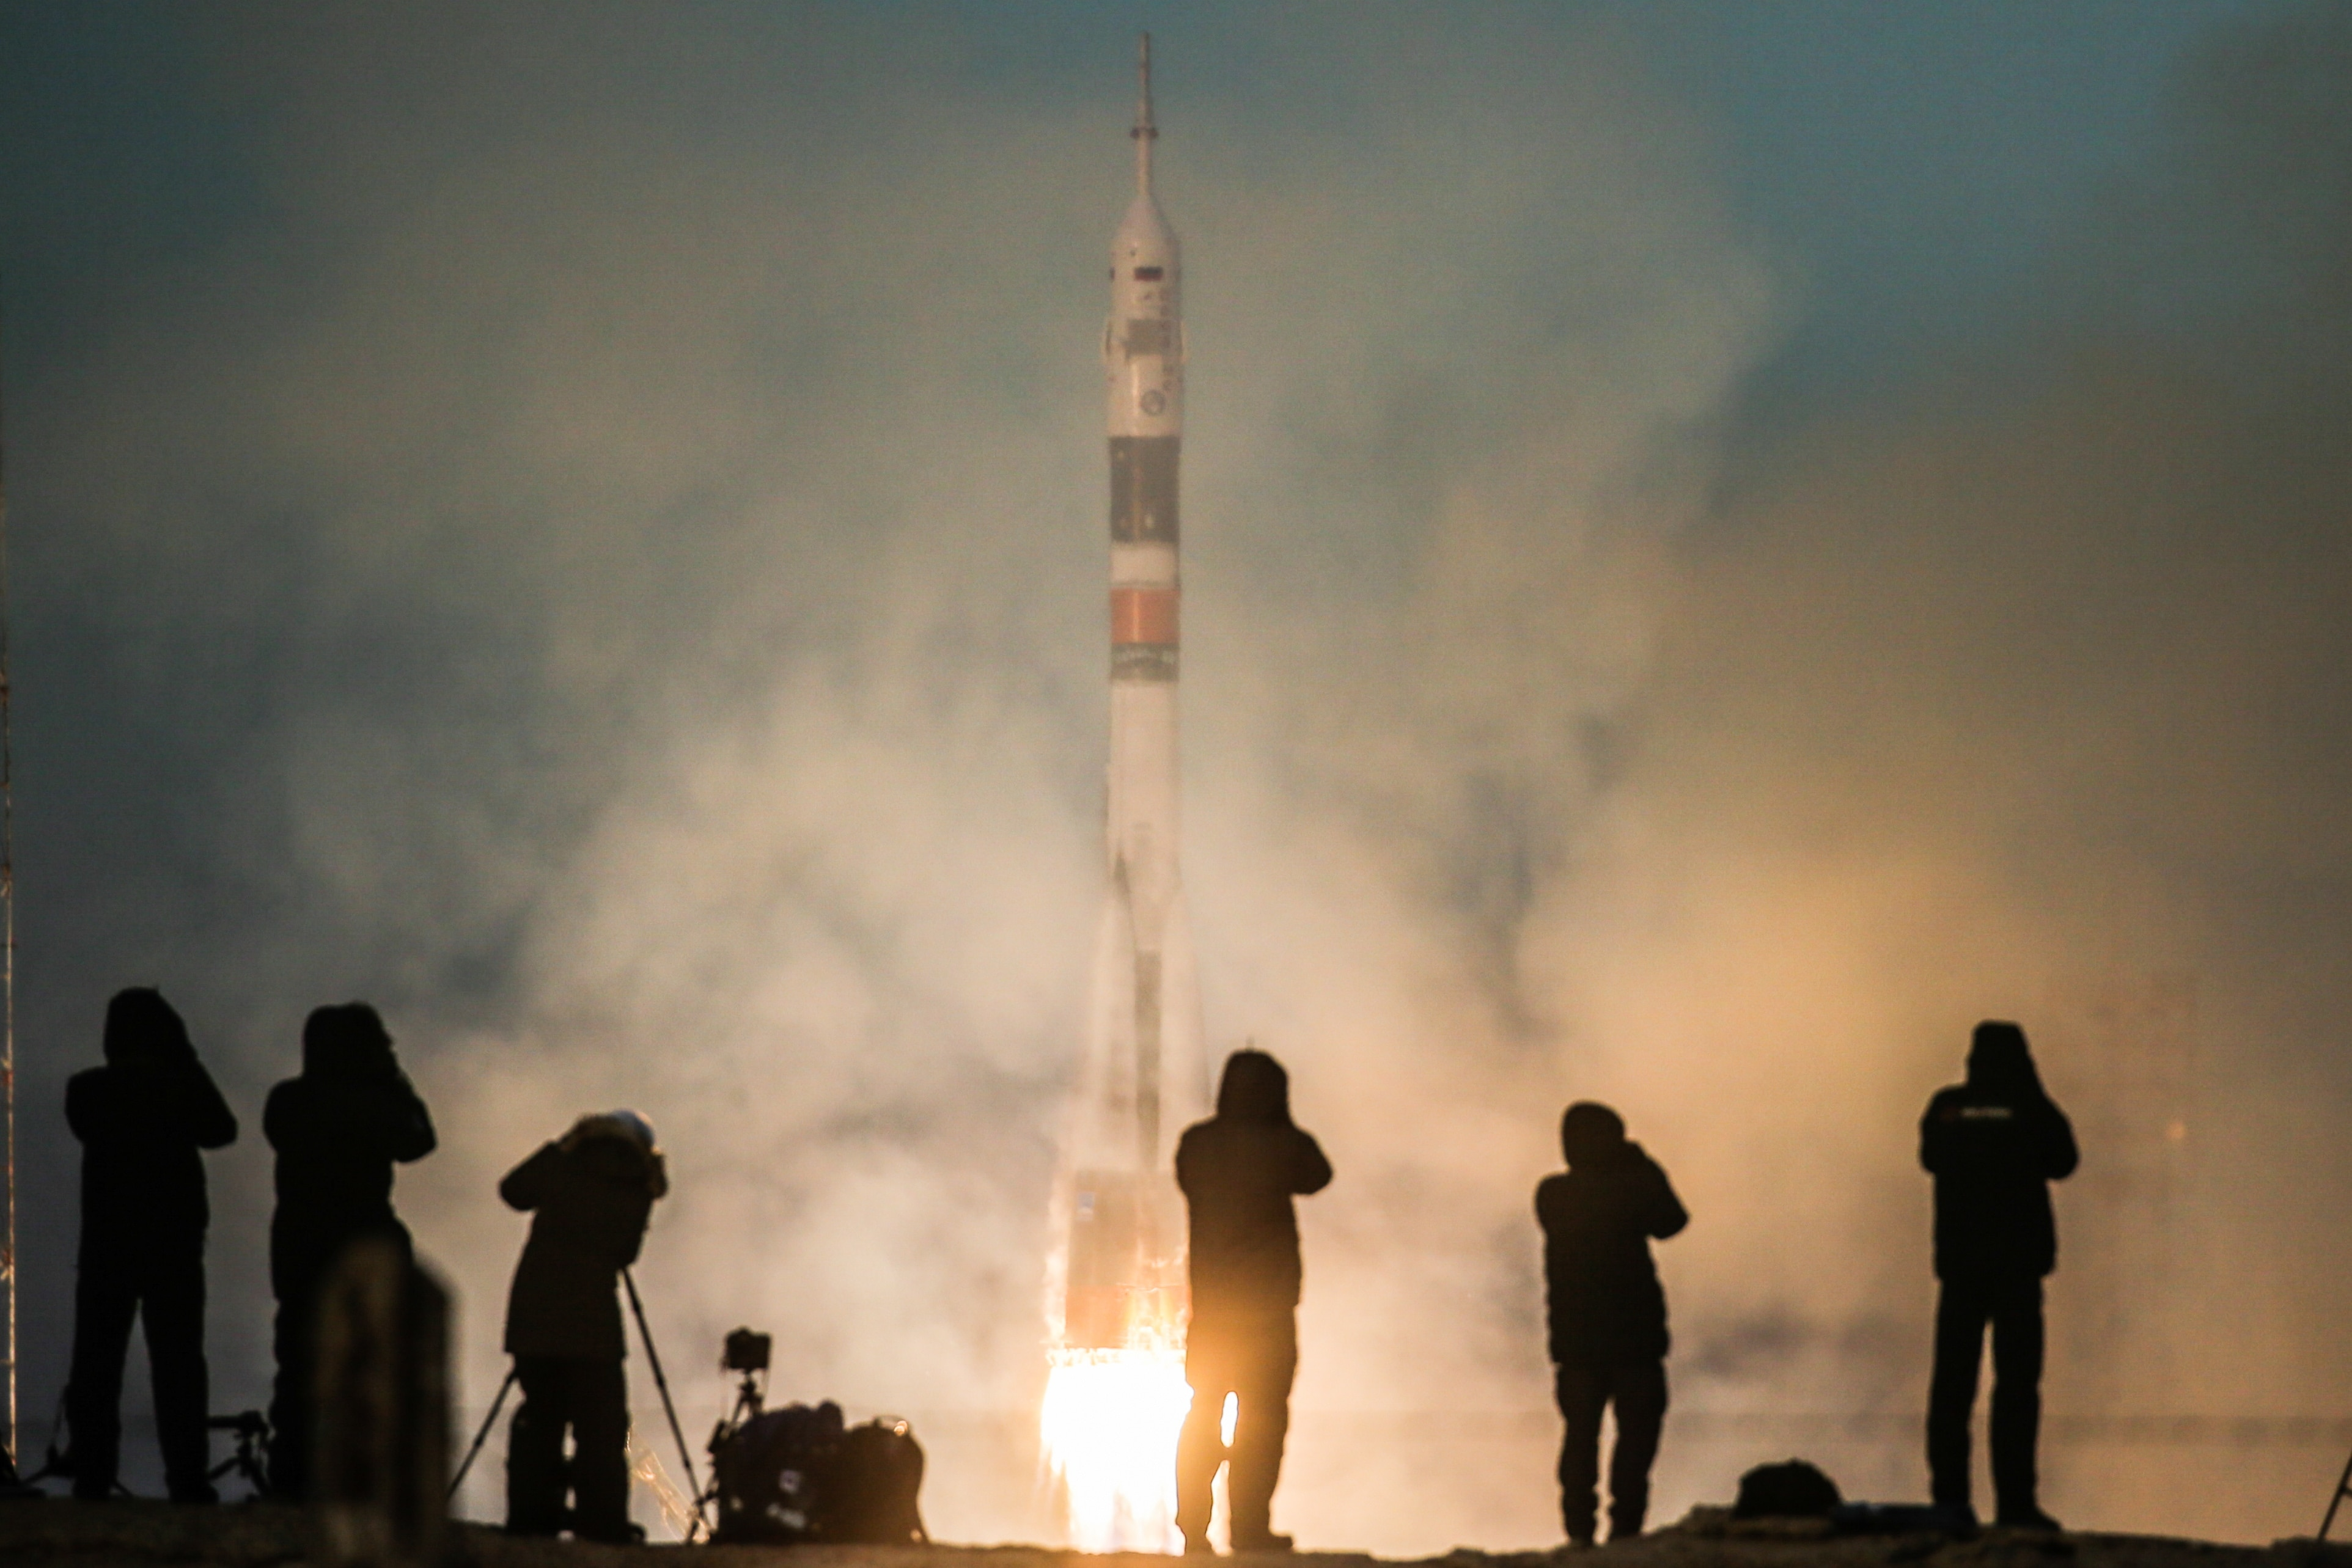 Soyuz-FG rocket carrying Soyuz MS-11 spacecraft launched from Baikonur Cosmodrome